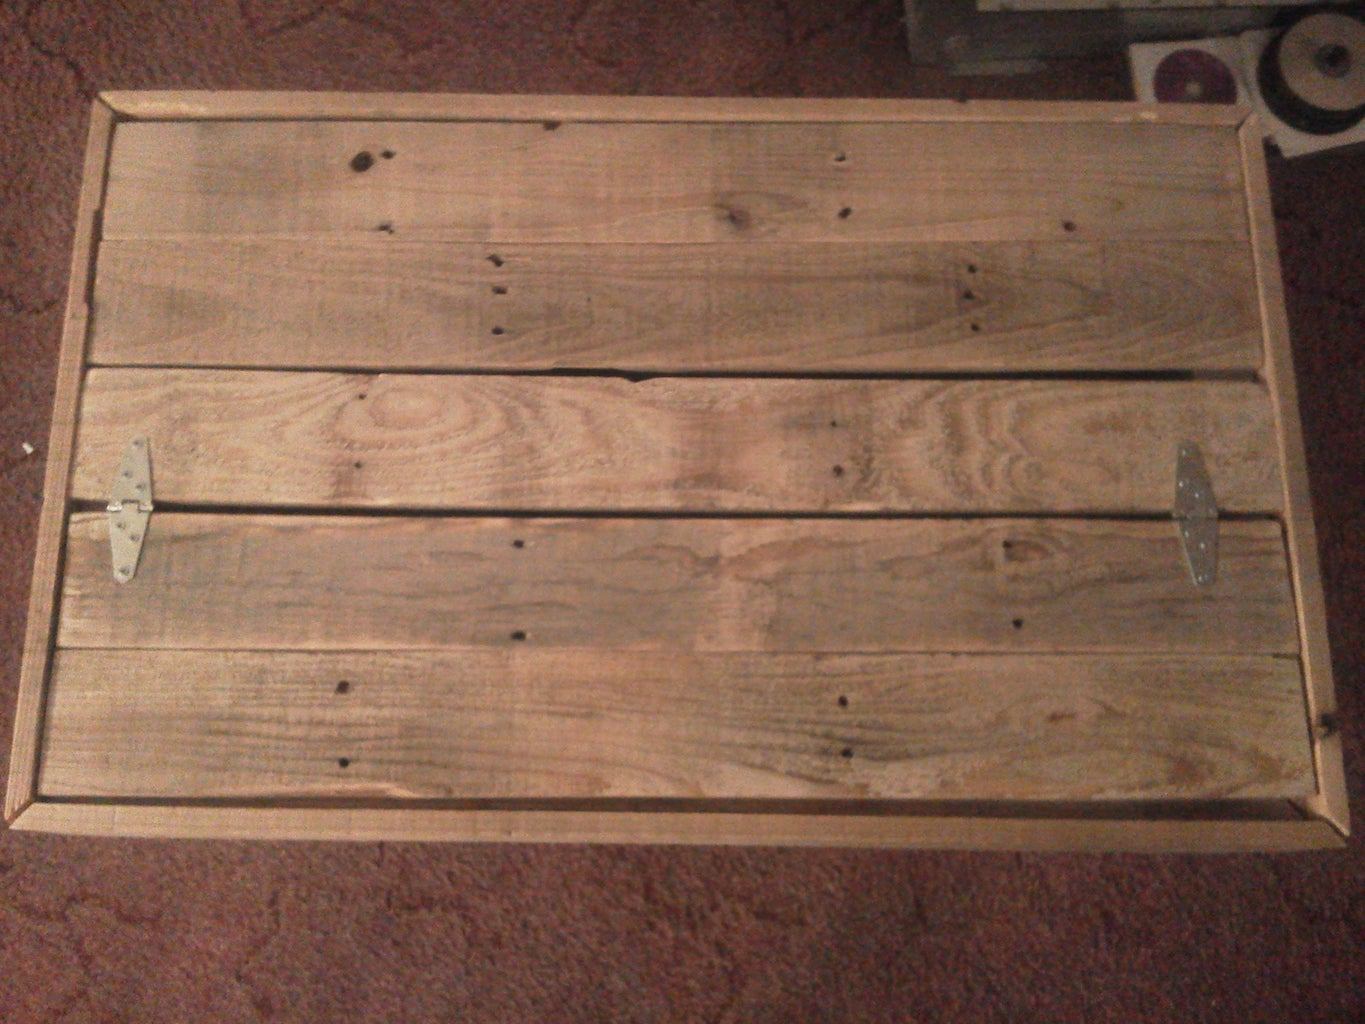 Cutting and Attaching Top/bottom Planks and Legs